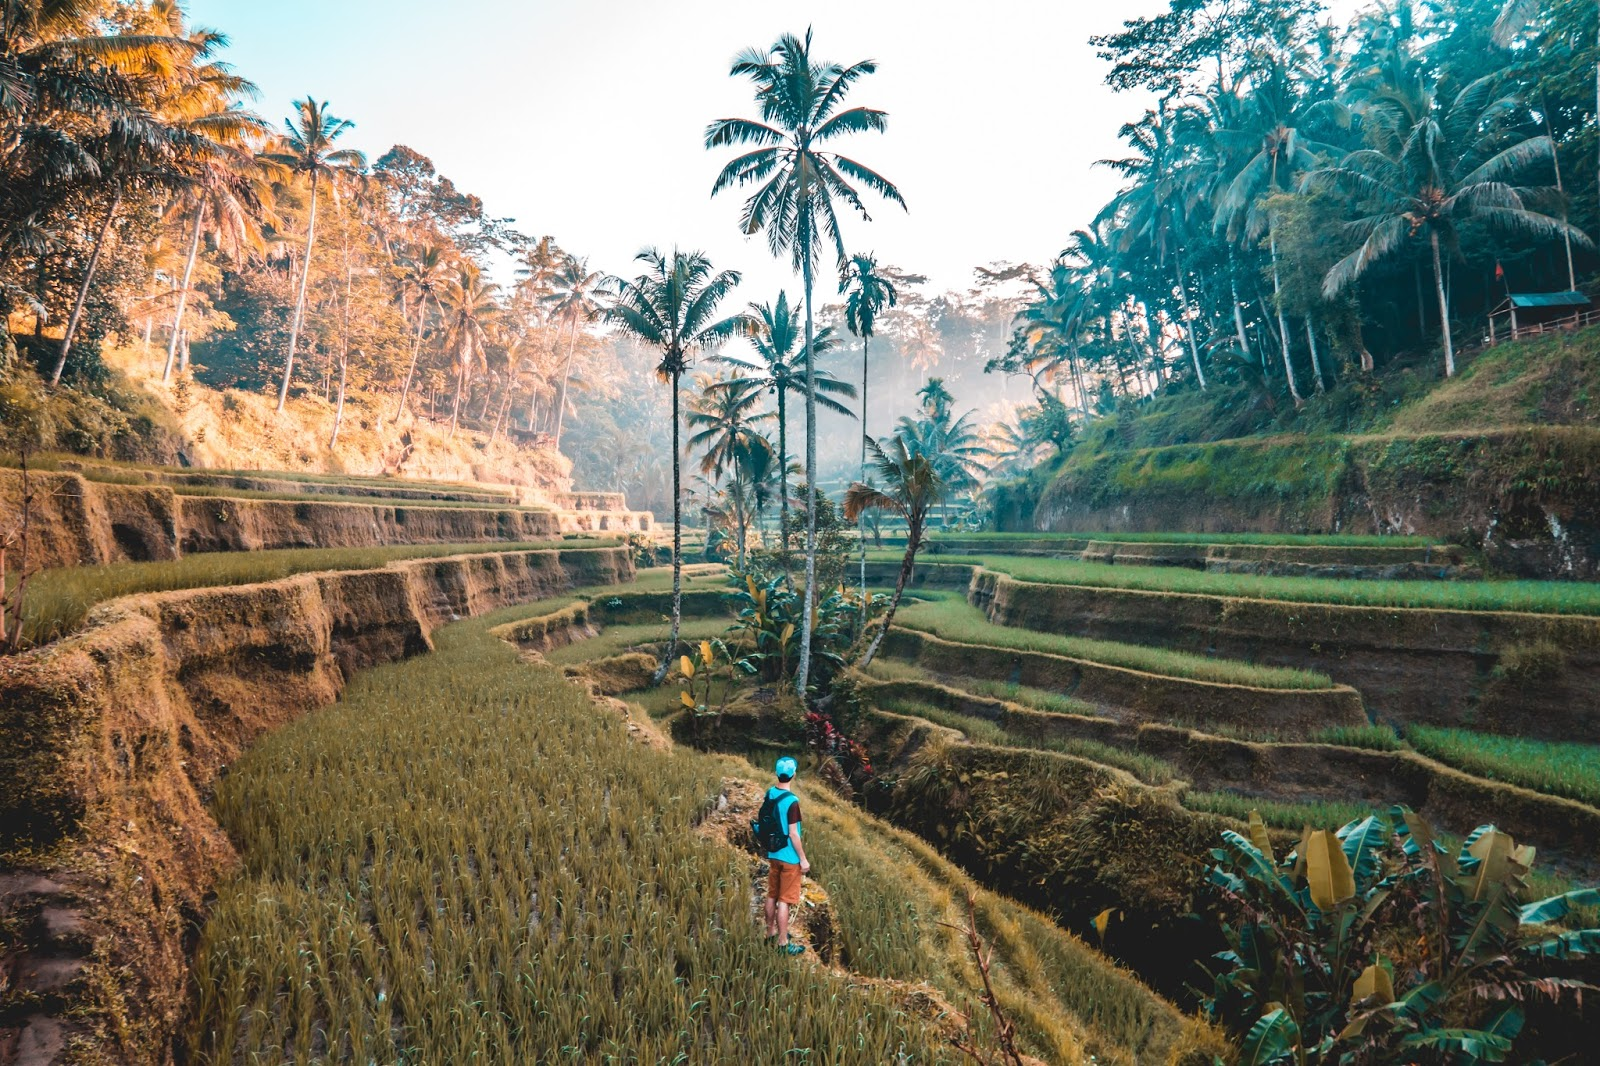 Terraced hills in Bali